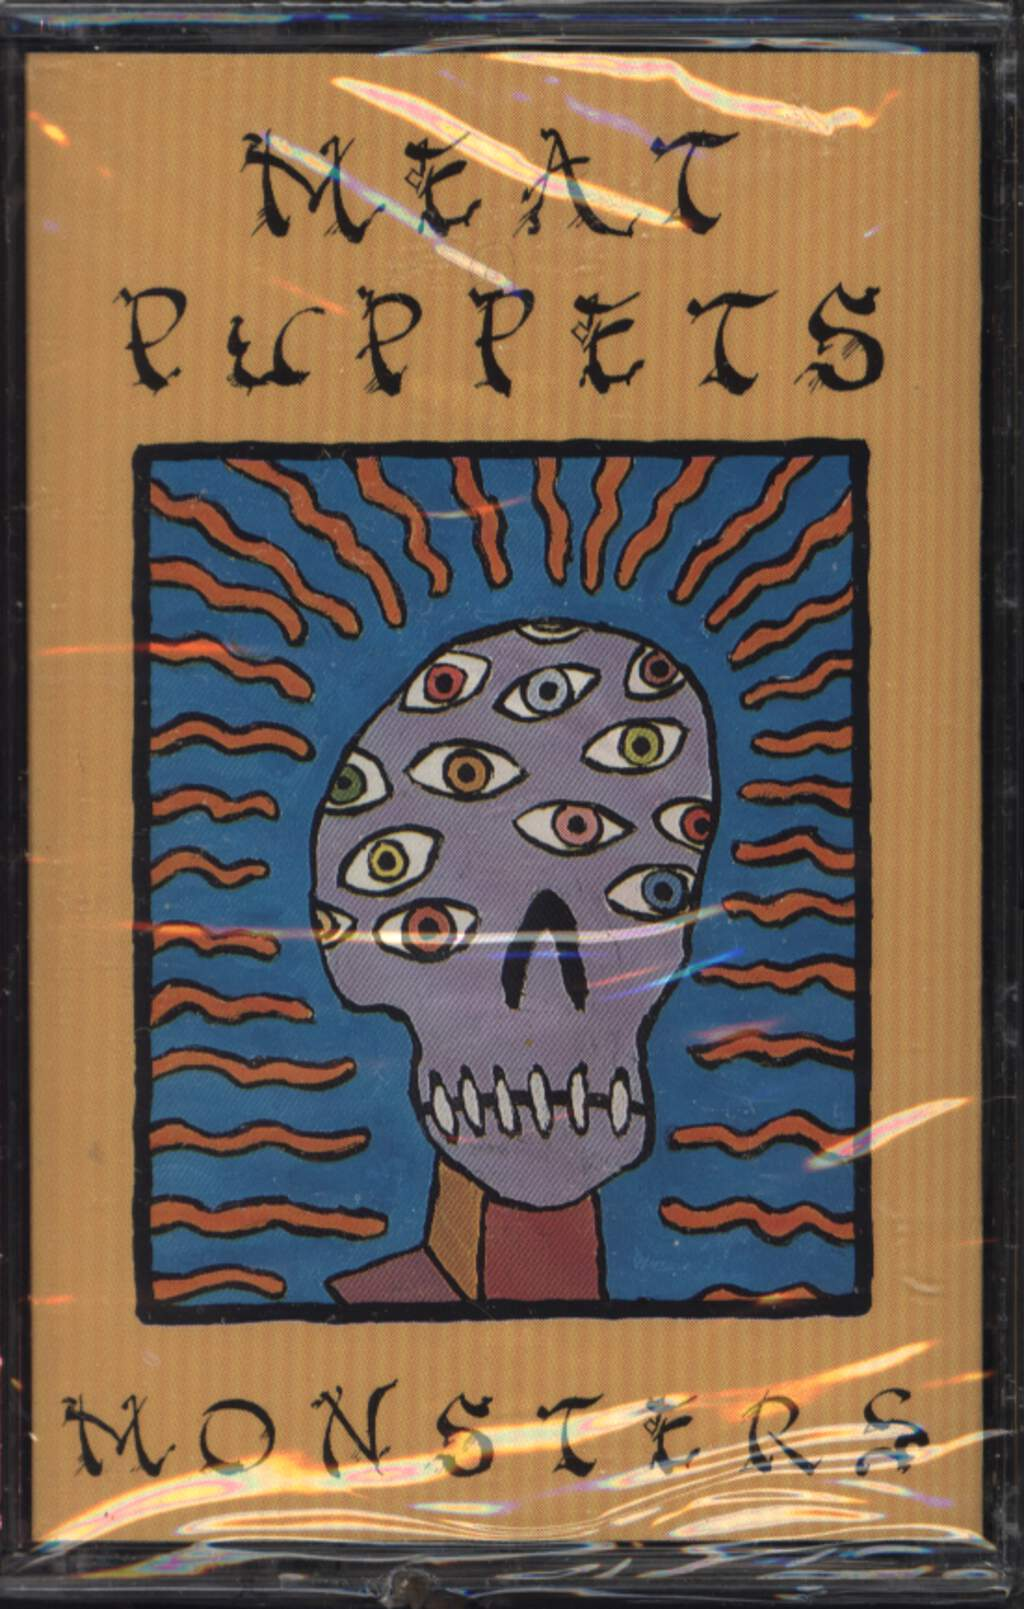 Meat Puppets: Monsters, Compact Cassette